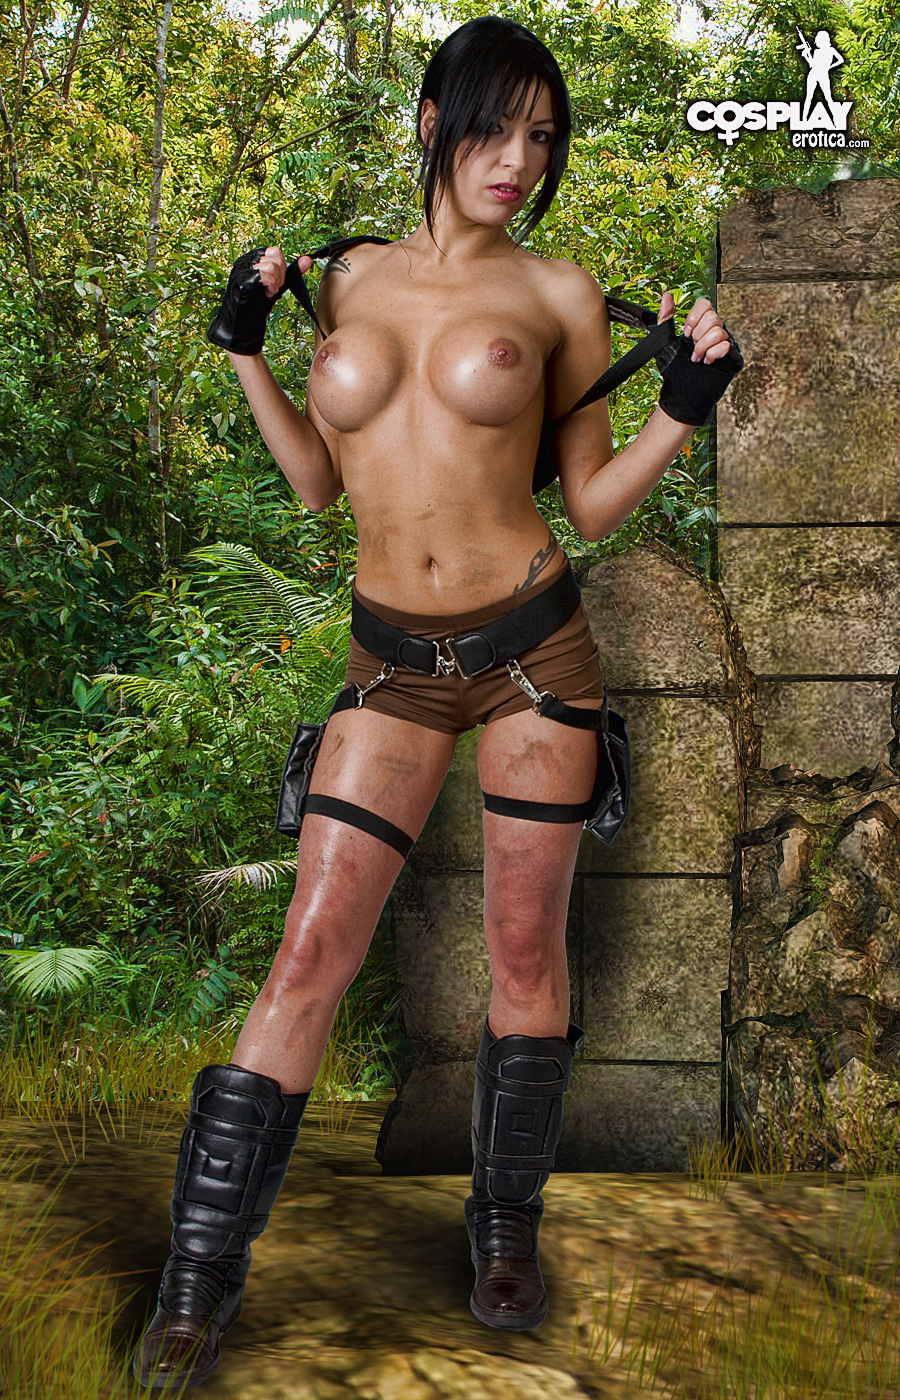 Tomb raider cosplay sex porncraft photo